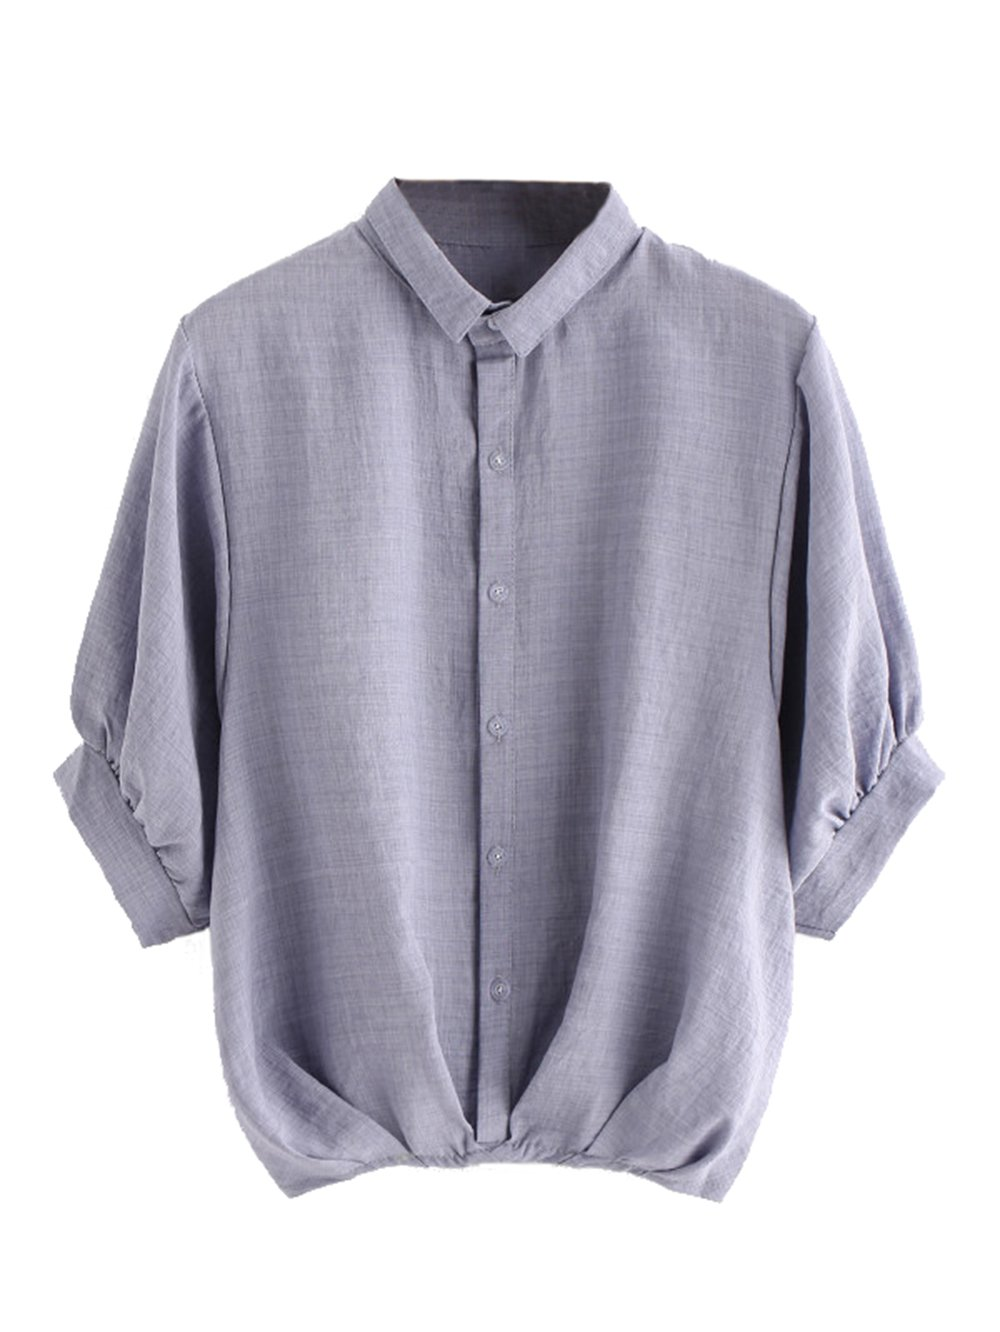 Milumia Women's Lantern Sleeve Pleated Detail Button Down Blouse Shirt Medium Gray